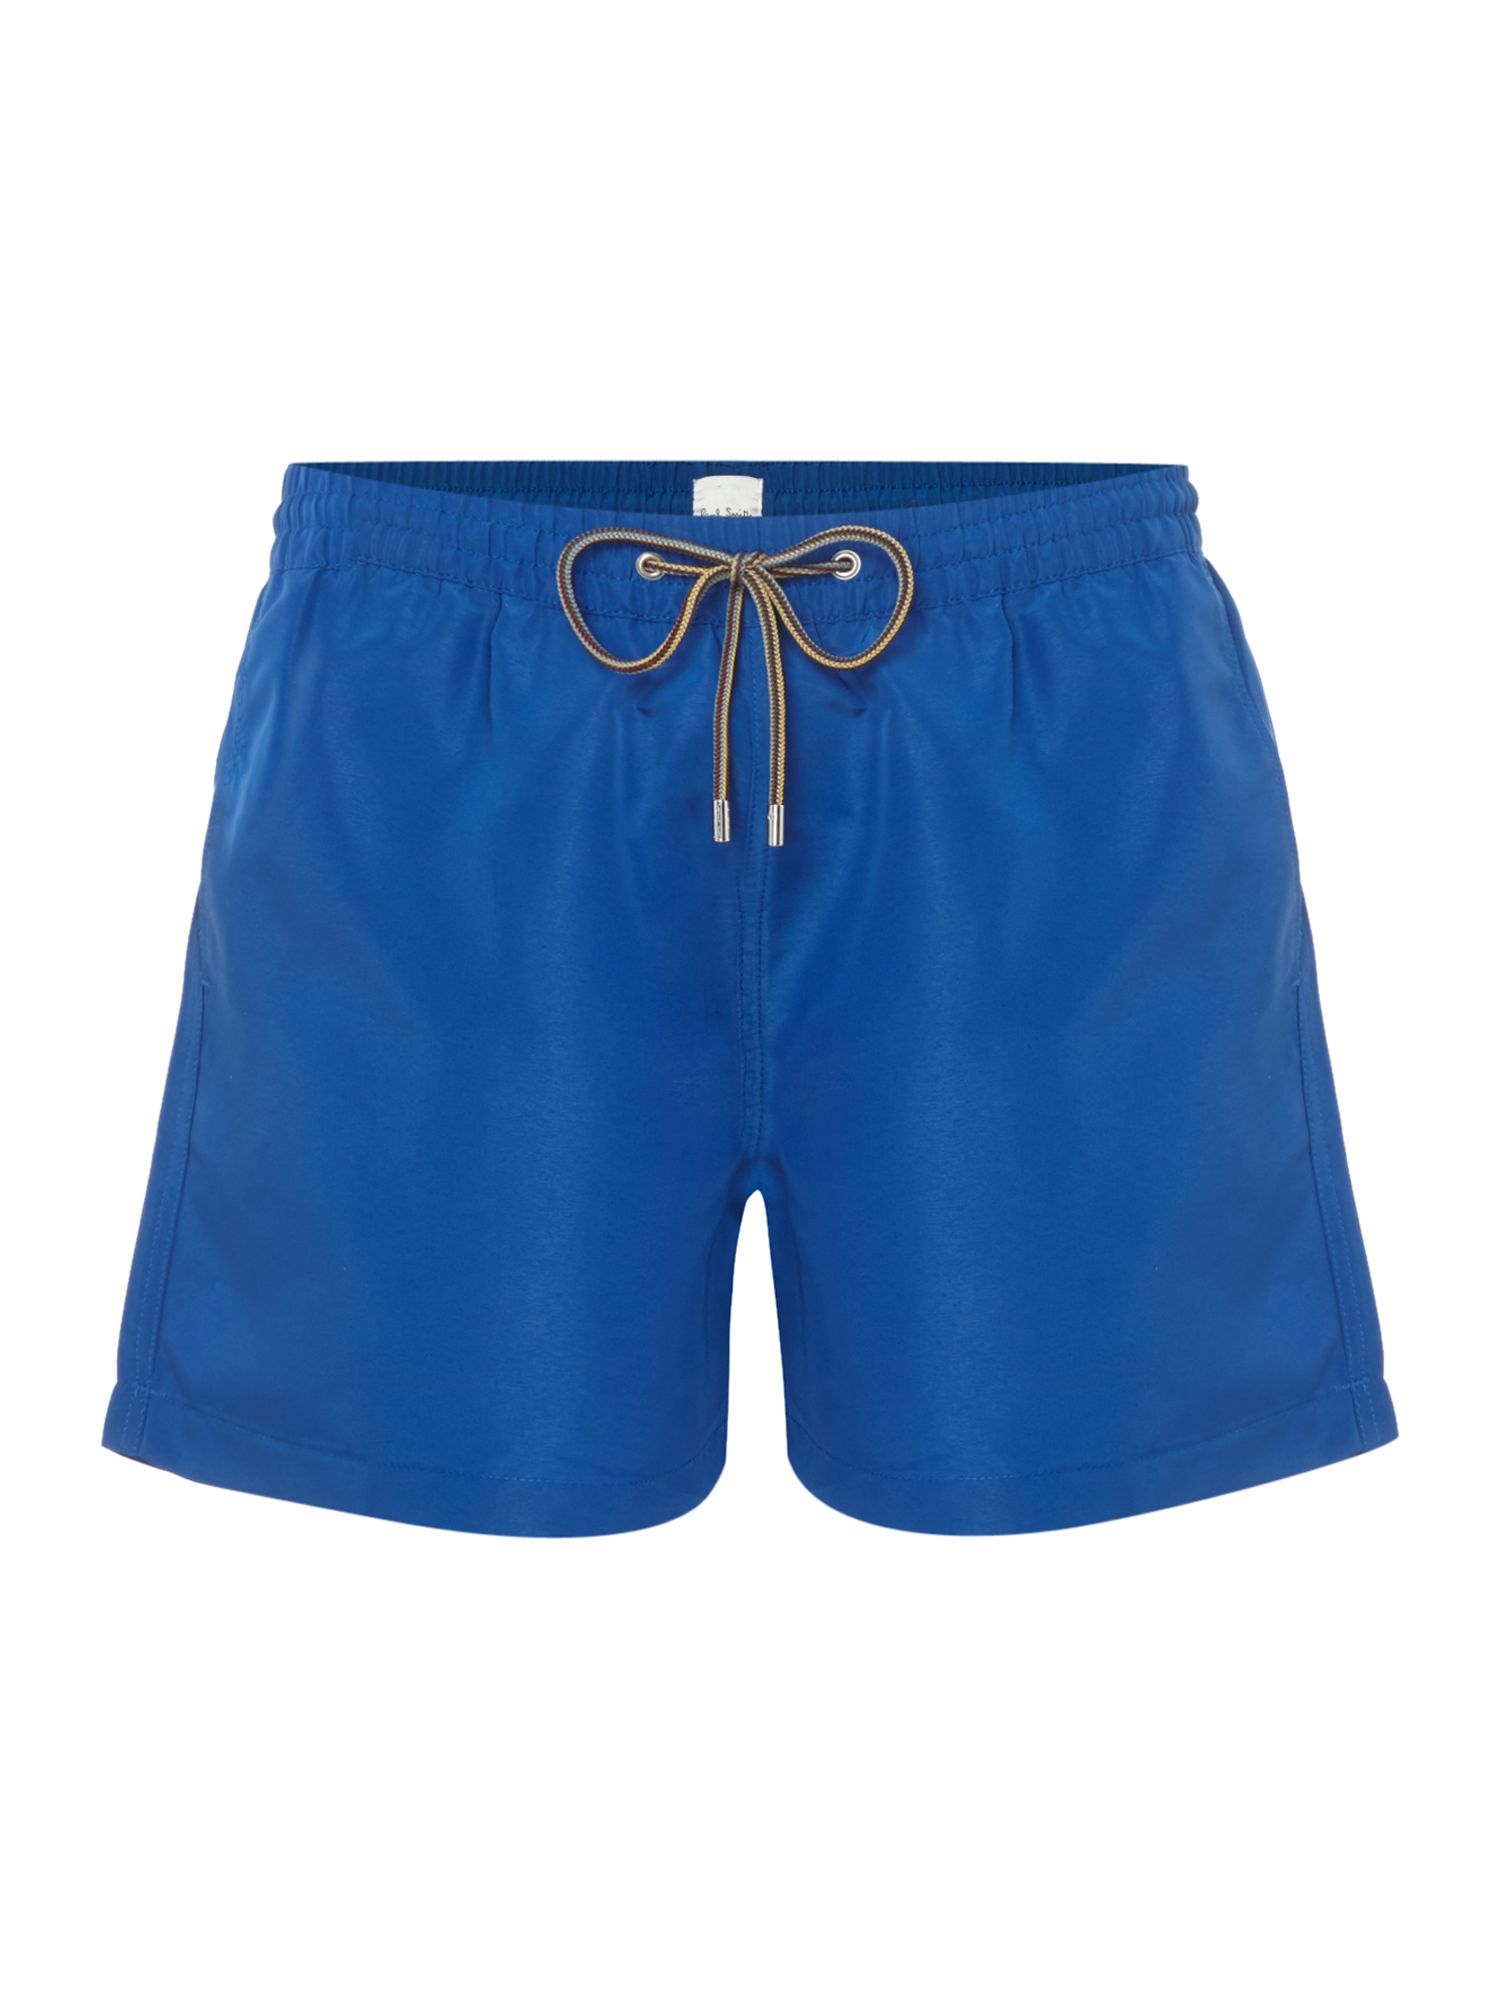 Men's Paul Smith Solid Colour Classic Swim Shorts, Blue